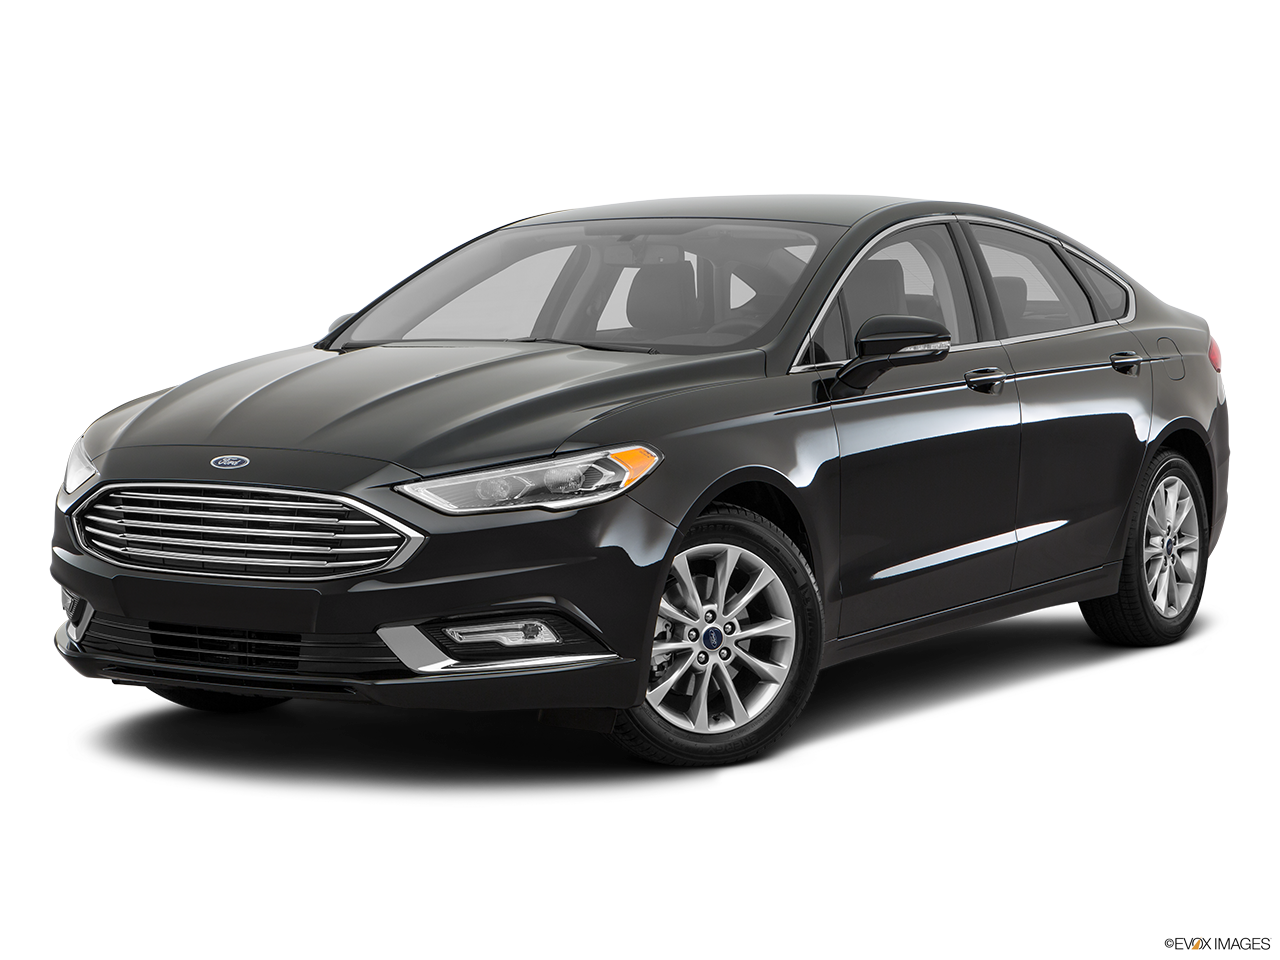 Test Drive A 2017 Ford Fusion at Mossy Ford in San Diego